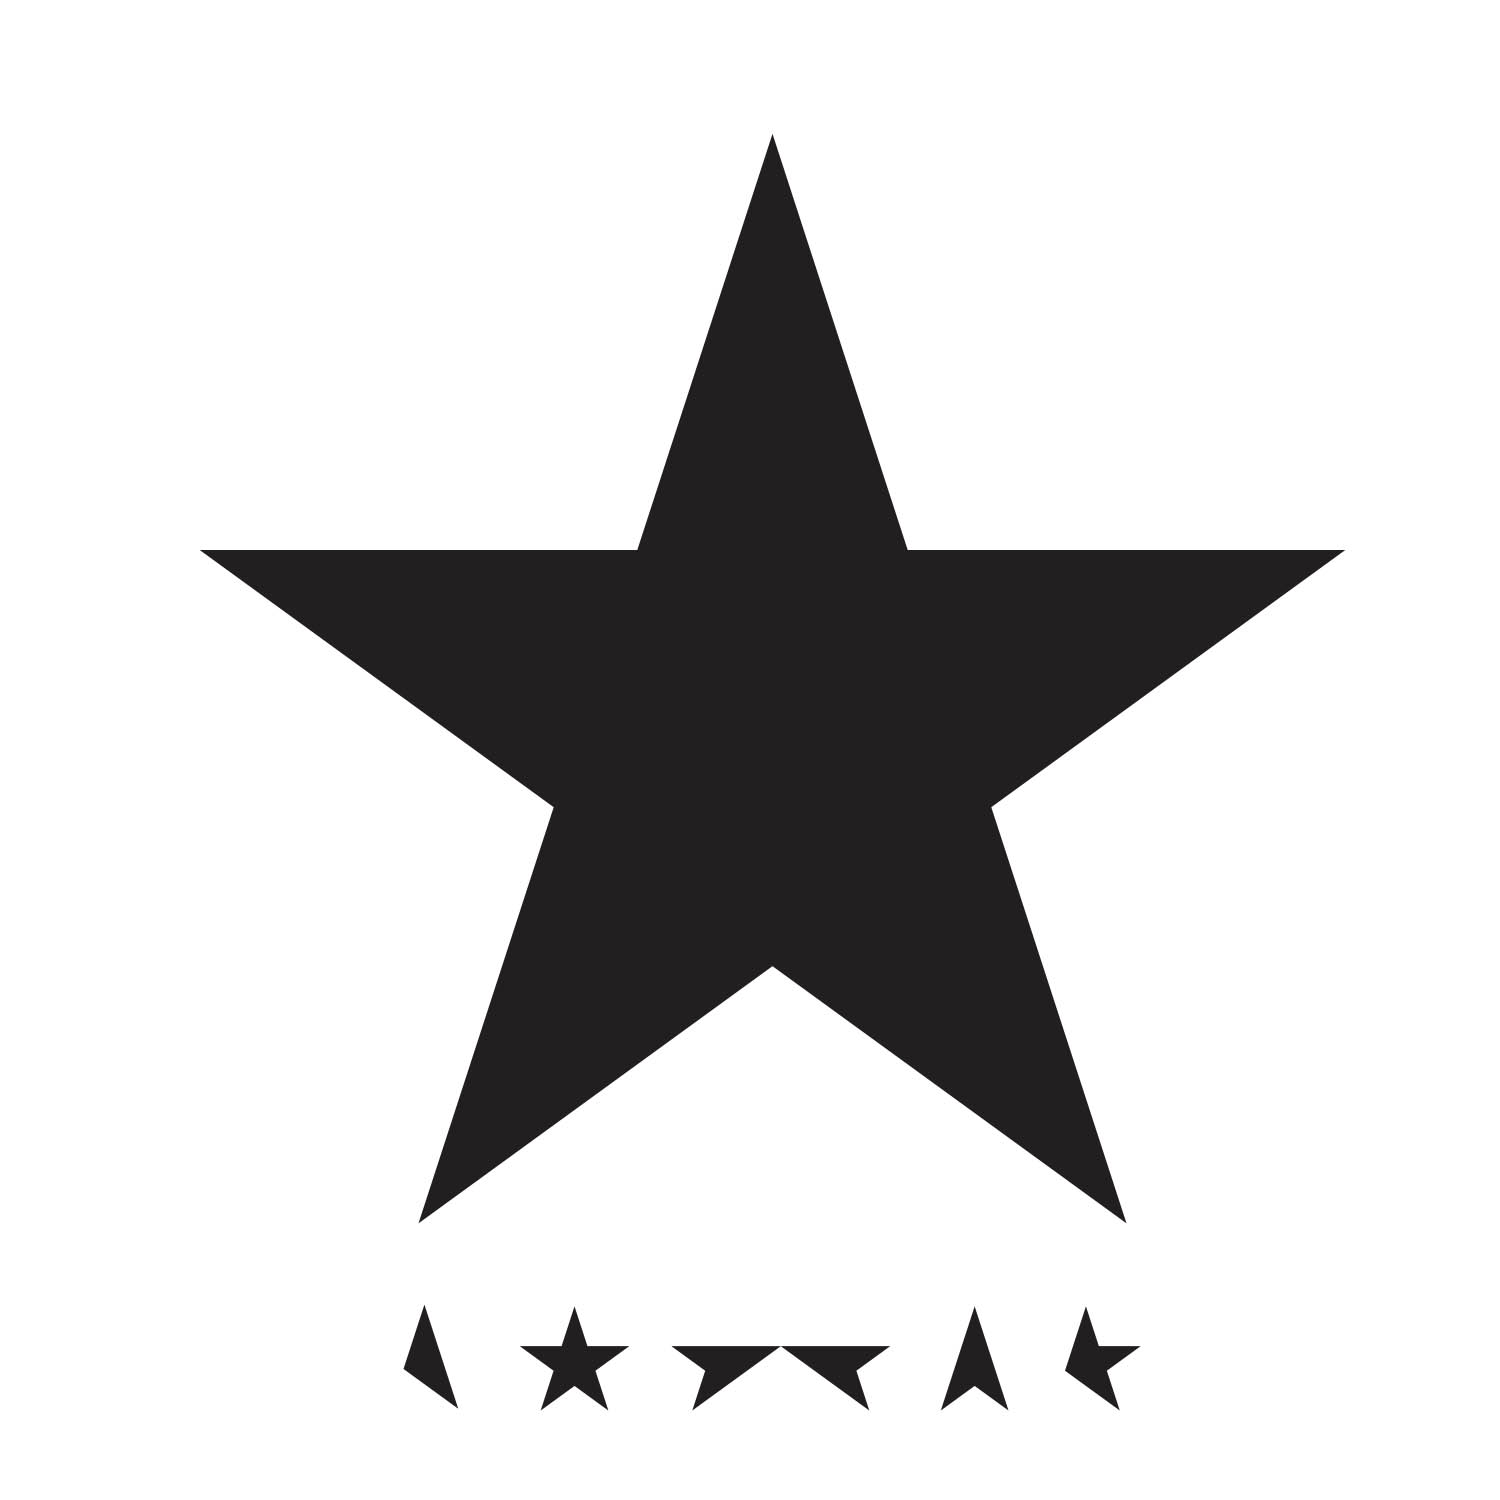 David_Bowie_Blackstar_album